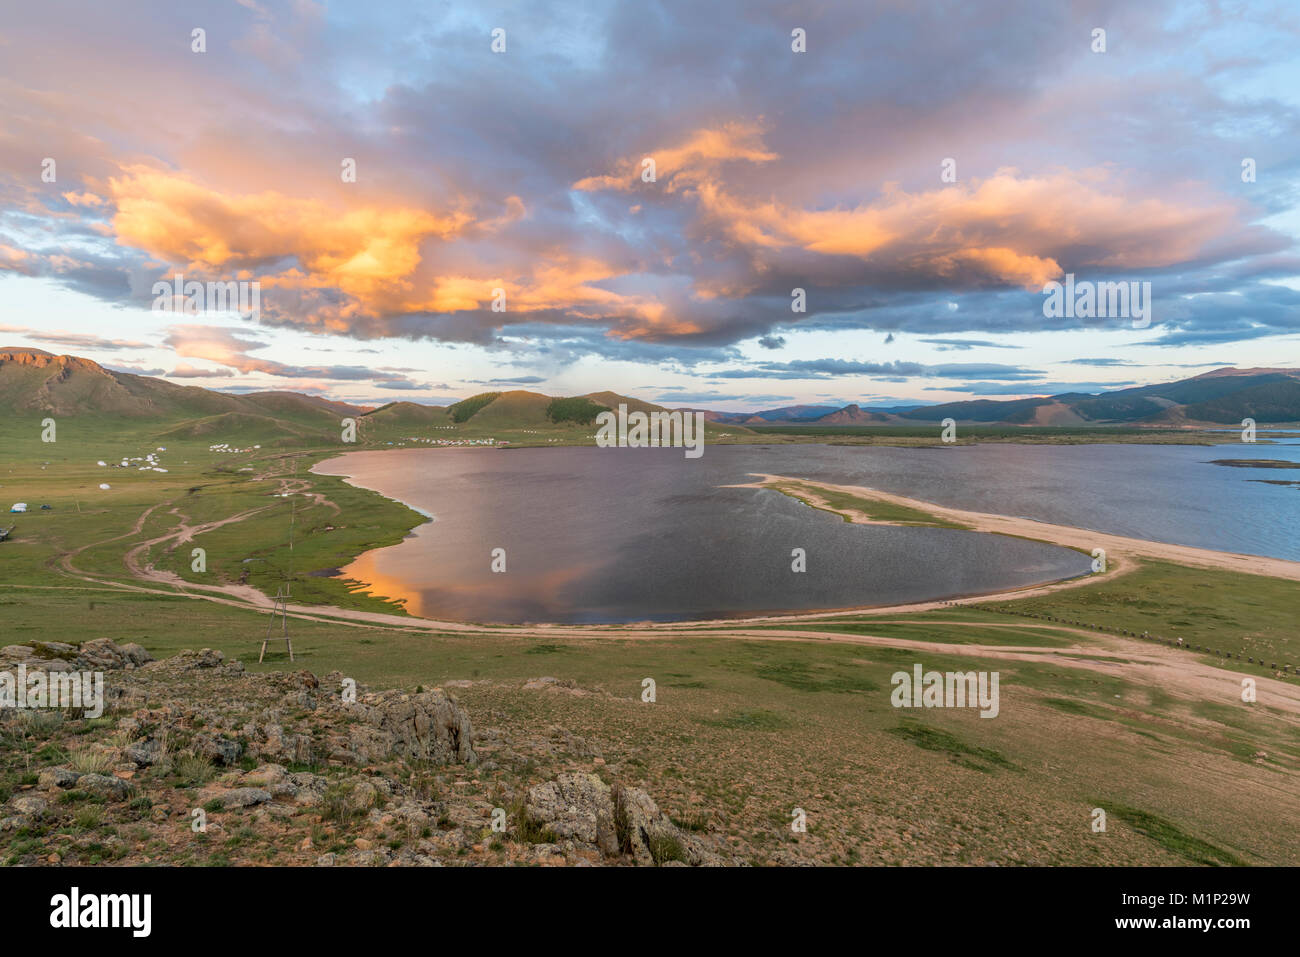 Sunset over White Lake, Tariat district, North Hangay province, Mongolia, Central Asia, Asia Stock Photo